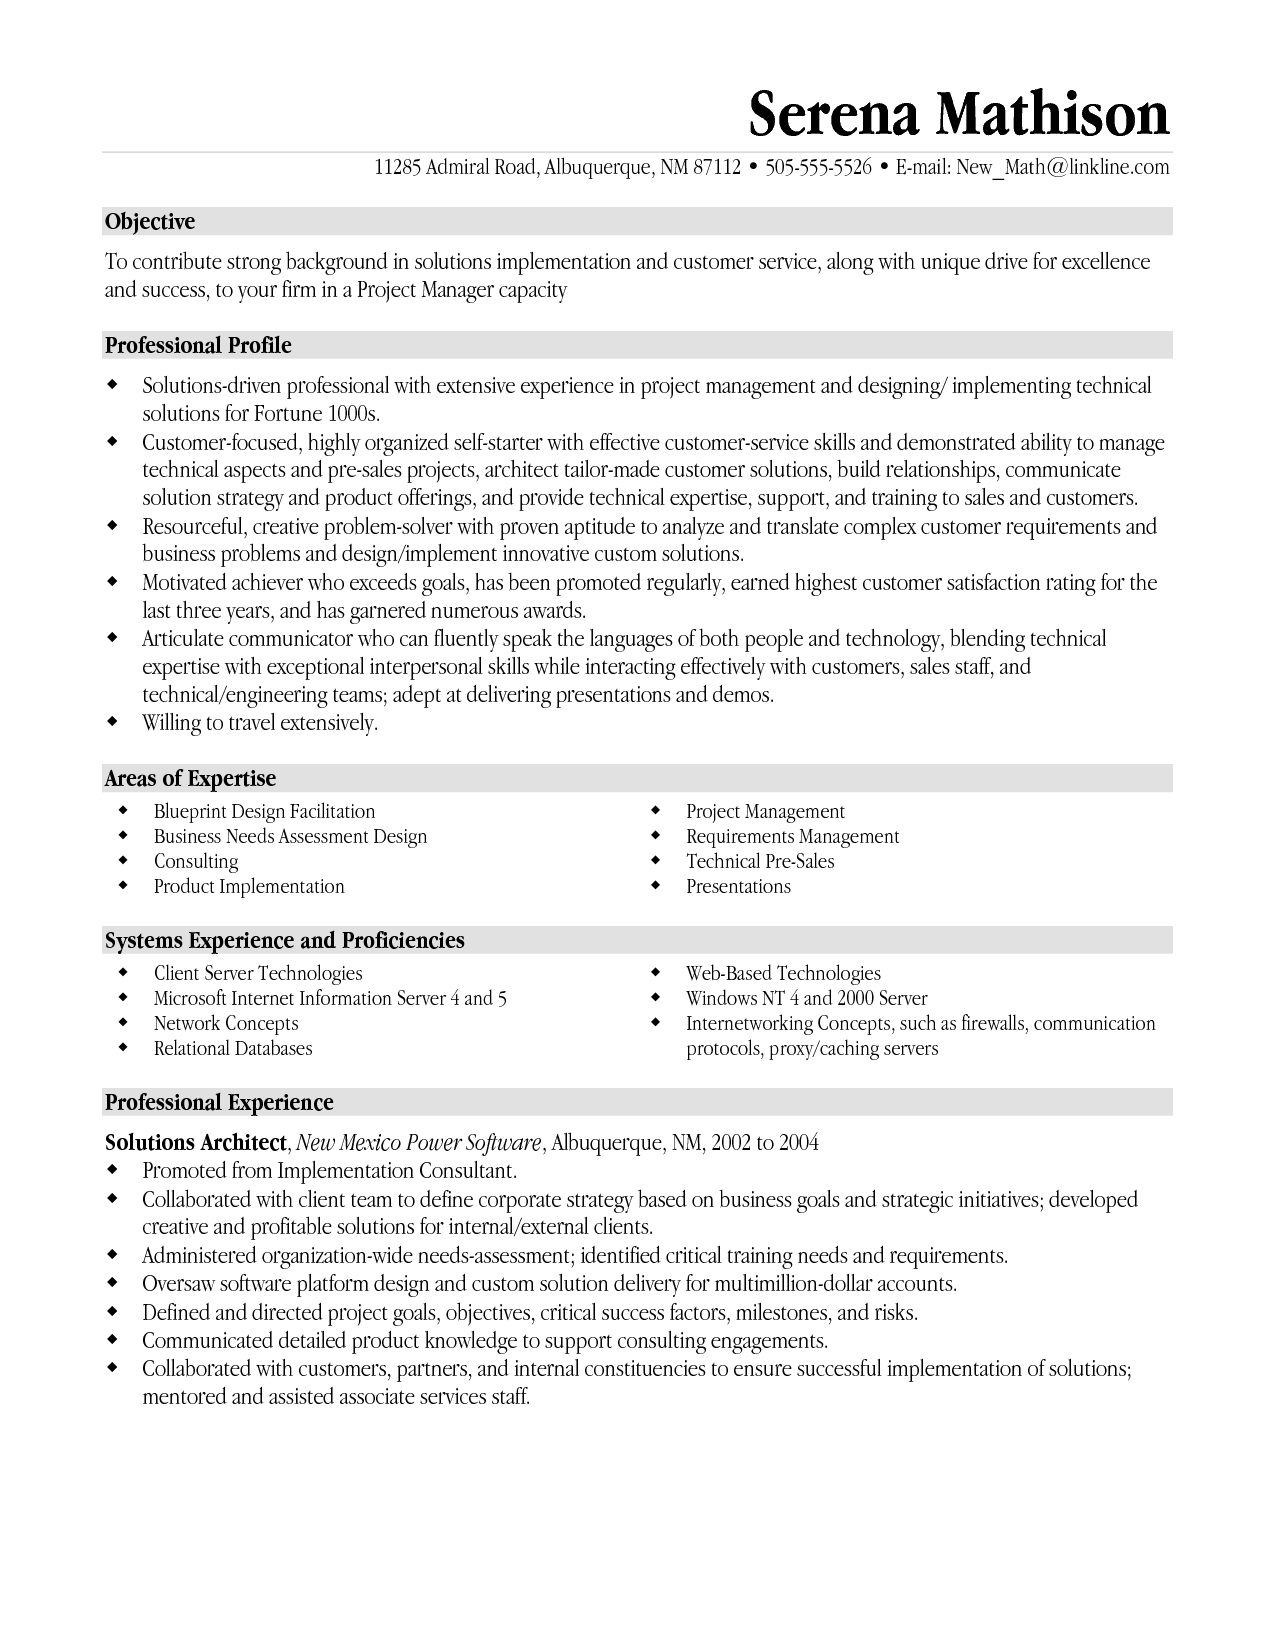 Management Resume Samples Resume Templates Project Manager  Project Management Resume